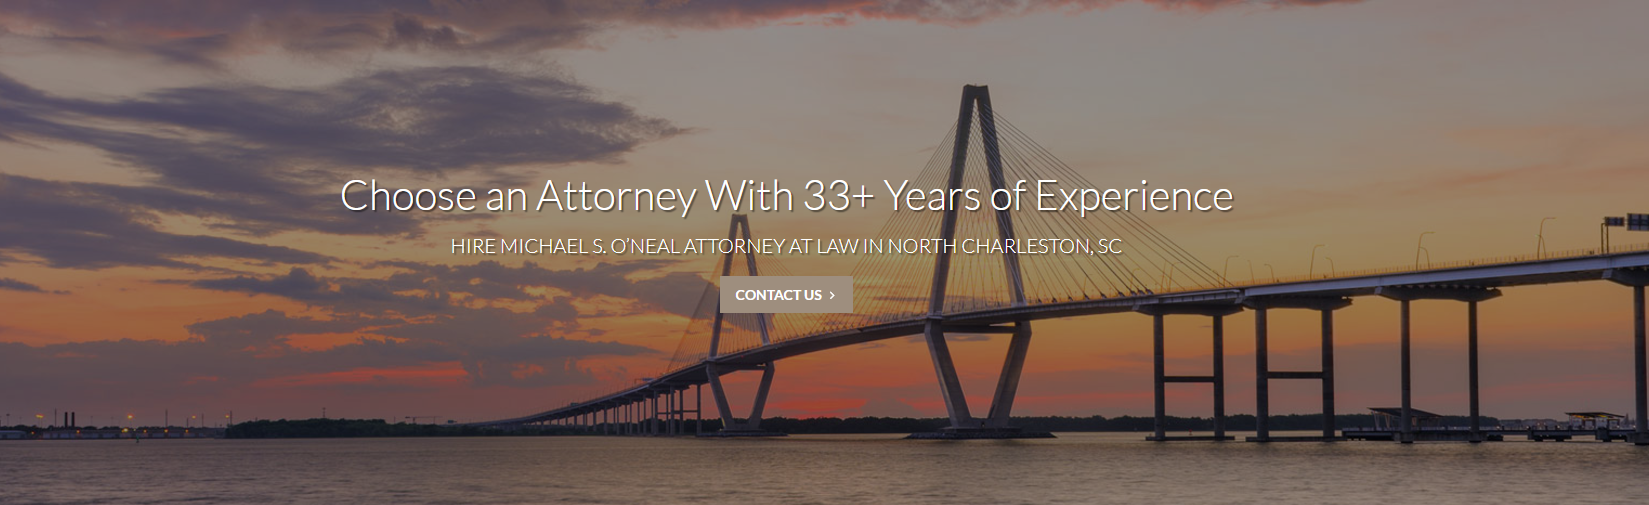 Michael S. O'Neal Attorney at Law